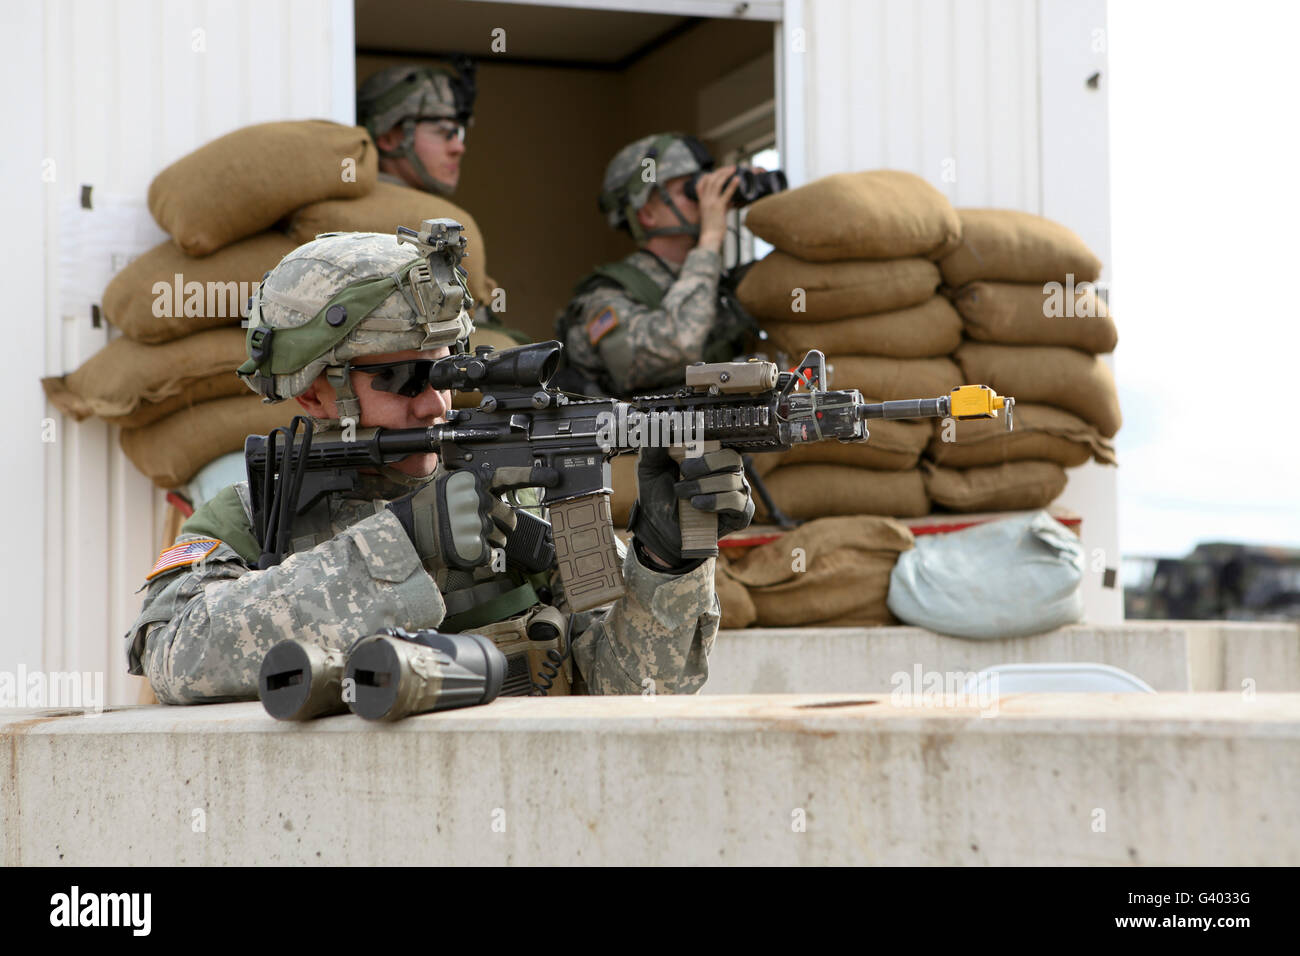 U.S. Army soldier looks down the scope of his M4 assault rifle. - Stock Image